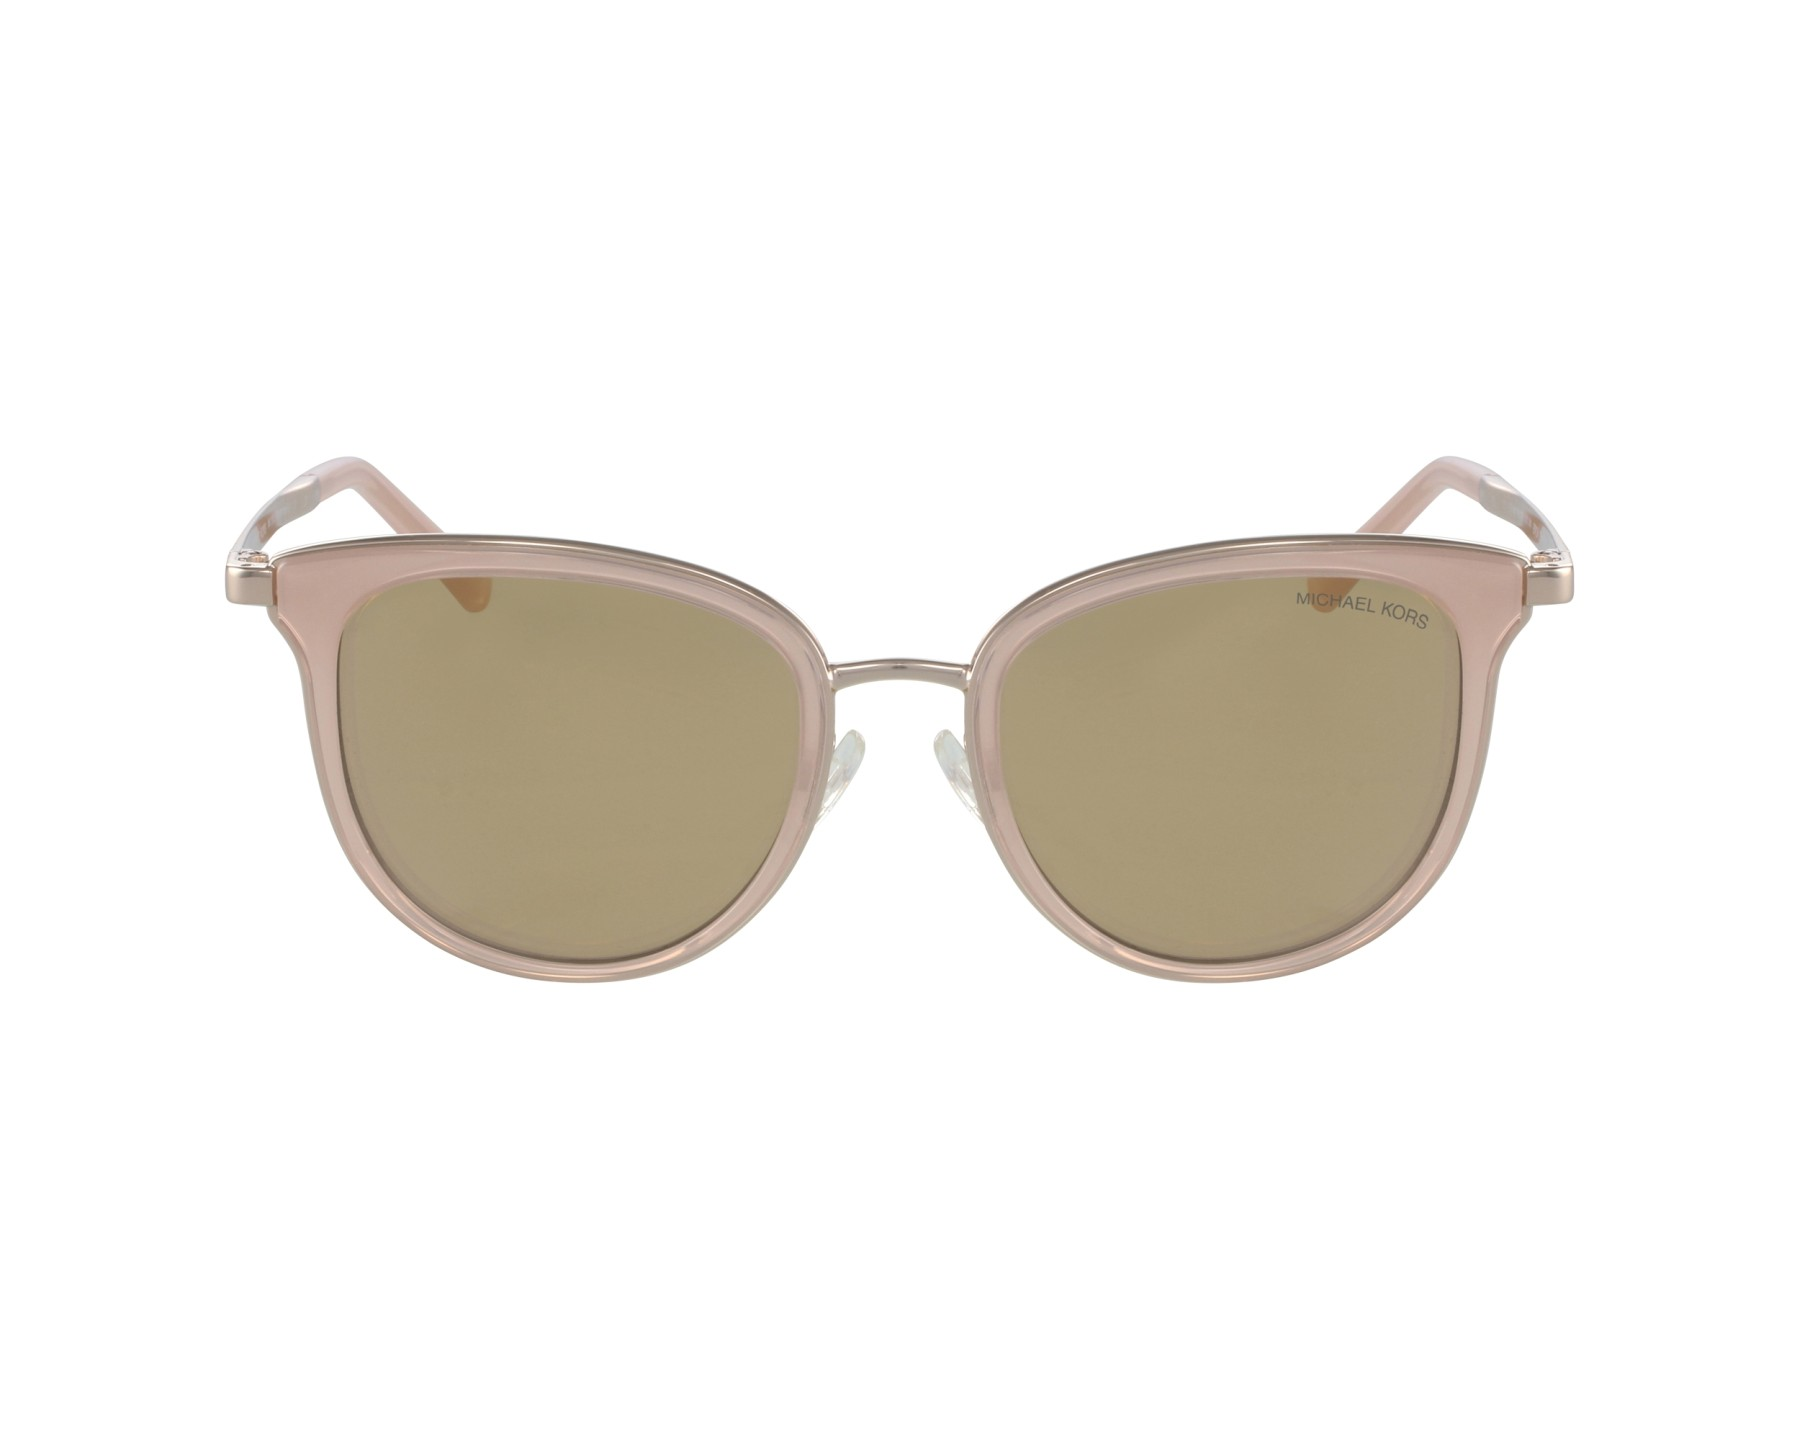 75a4bbdbe8 Sunglasses Michael Kors MK-1010 1103 R1 - Pink Rose gold profile view